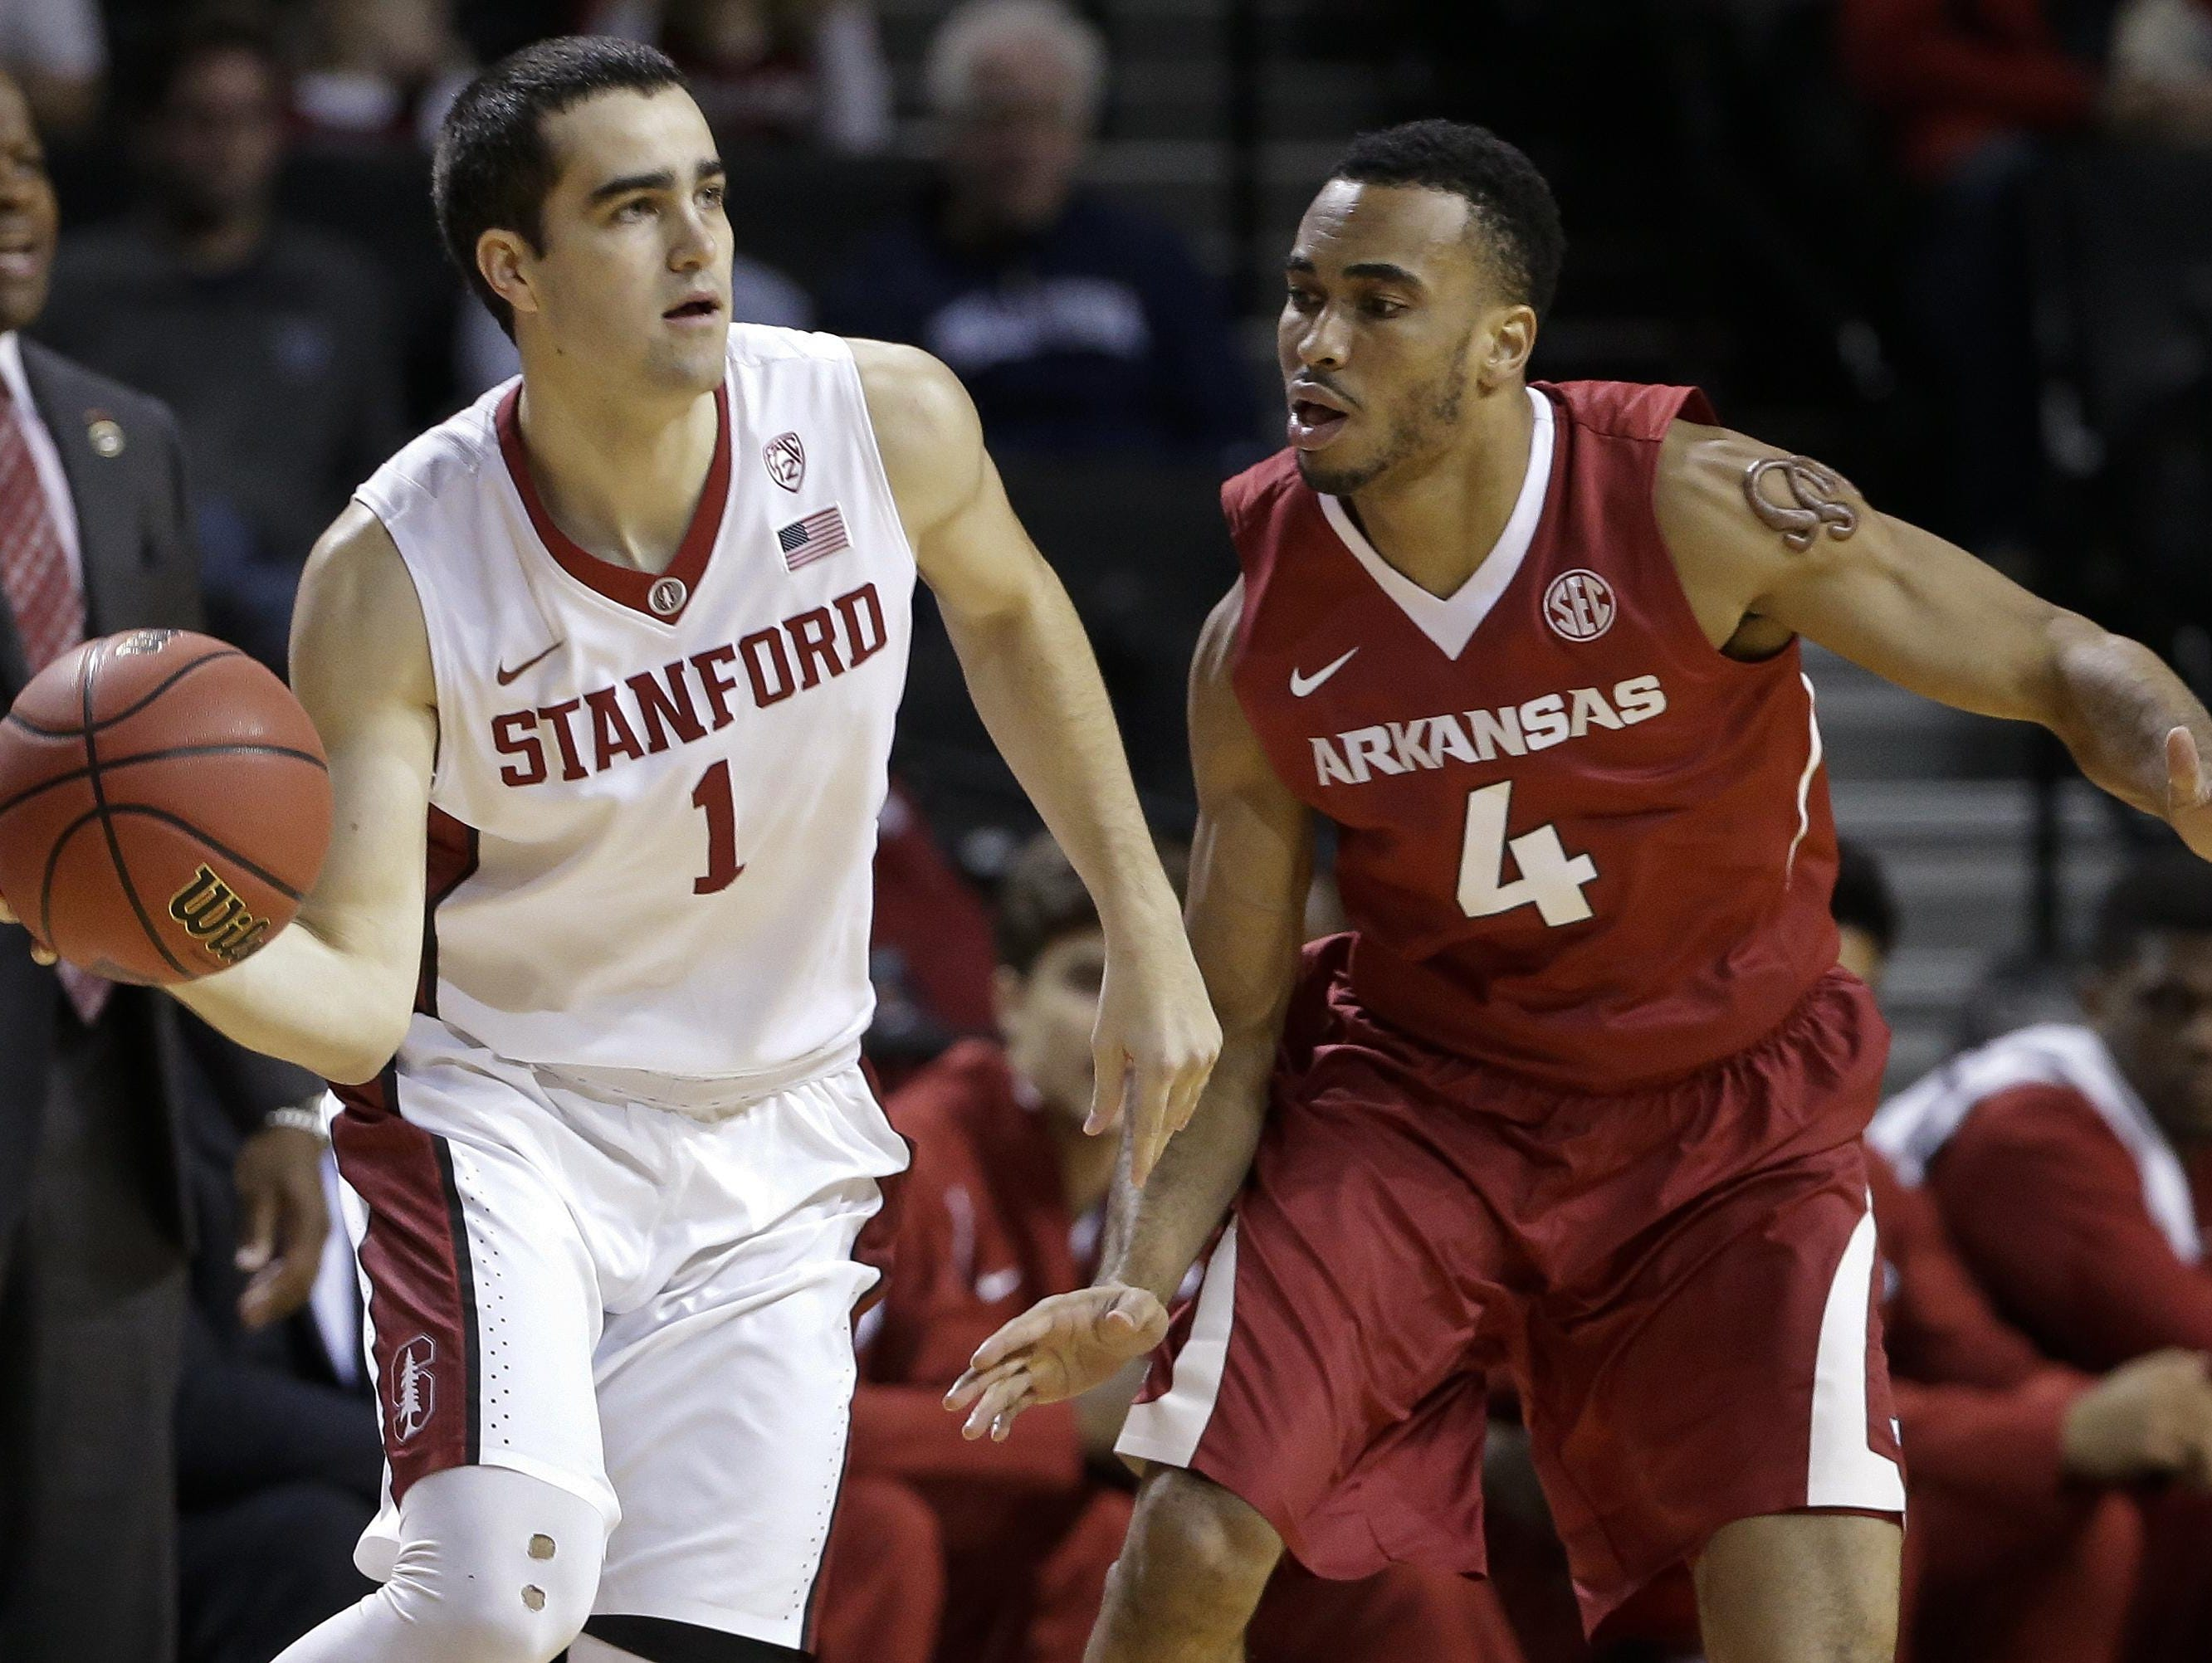 Stanford's Christian Sanders (1) passes away from Arkansas' Jabril Durham (4) during the first half in the consolation round of the NIT Season Tip-Off tournament on Friday in New York.